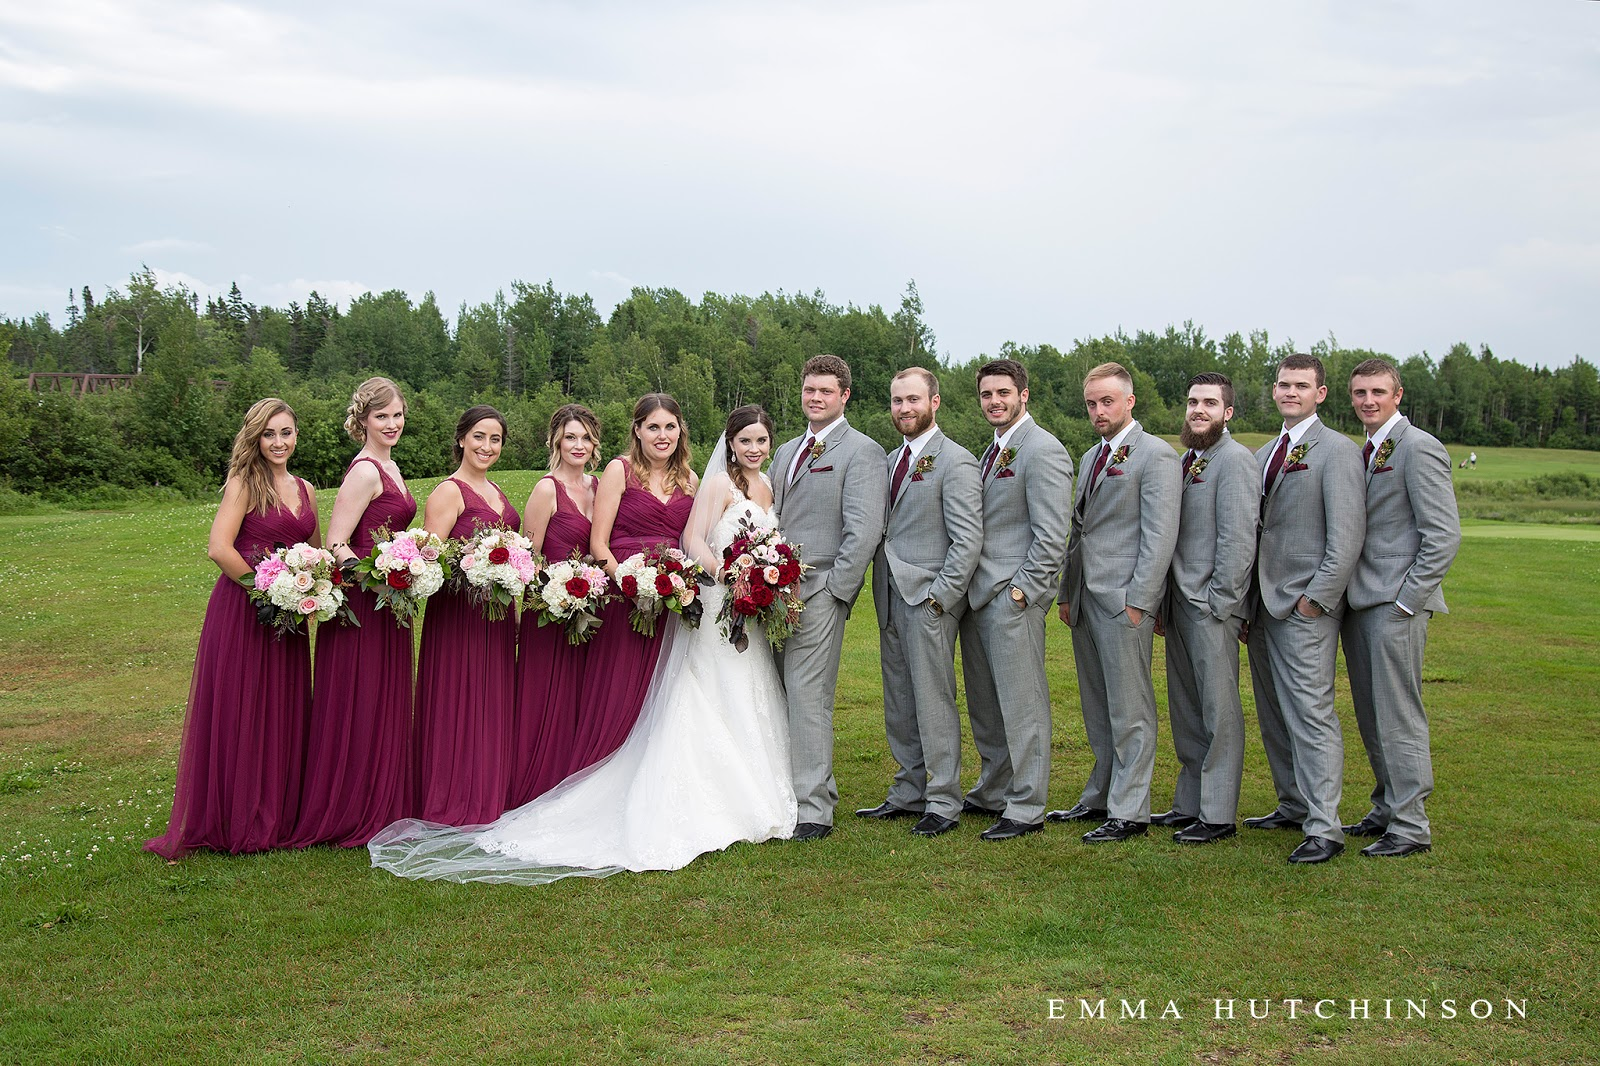 Weddings at the Grand Falls Golf Club photographed by Emma Hutchinson Photography